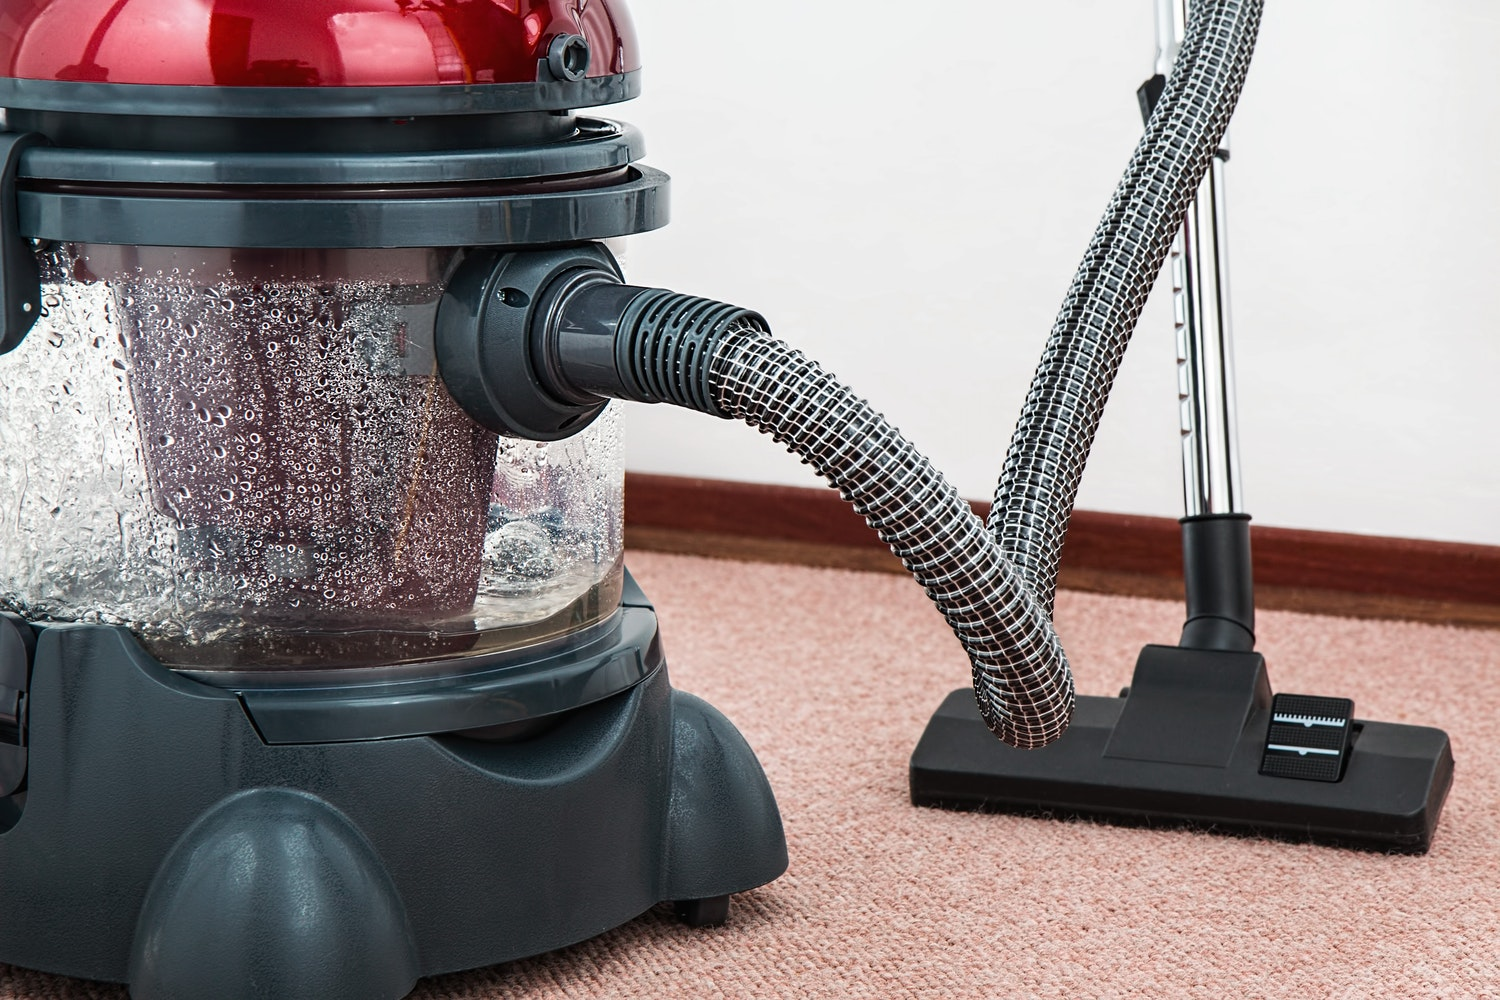 best carpet cleaners 500 beautiful carpet cleaning photos 183 pexels 183 free 31005